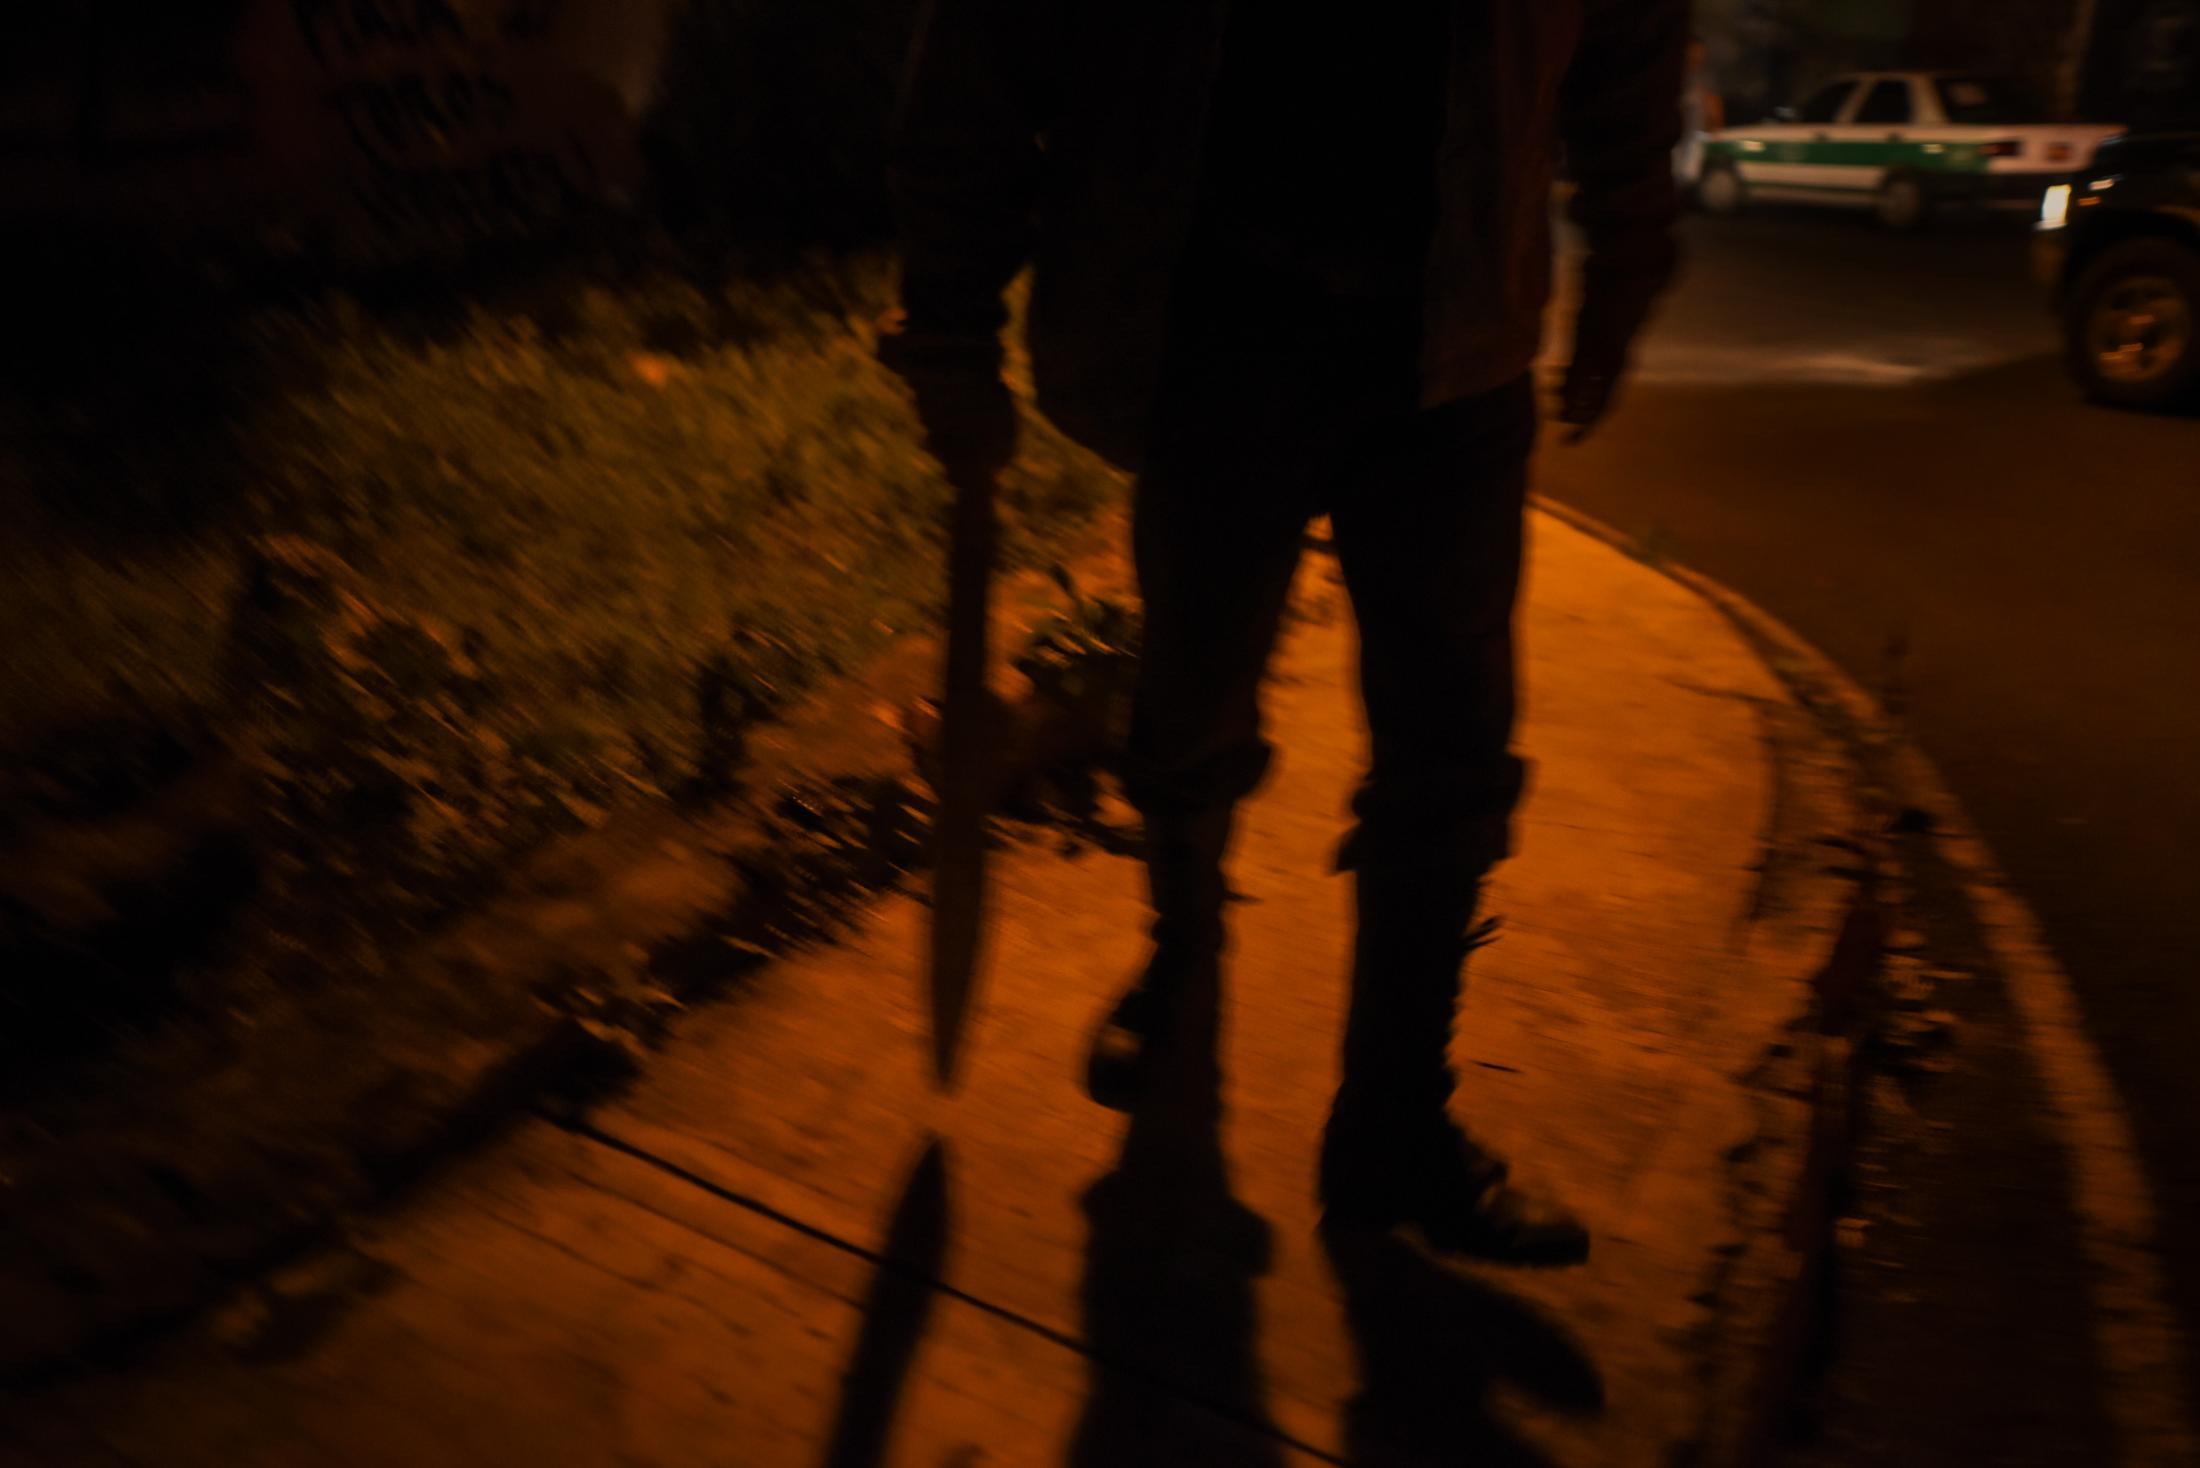 November 08, 2017. Jilotepec, Veracruz, México. Habitants of the town decided to arm themselves with sticks and machetes to guard their homes, this due to the increase in violence near the town.